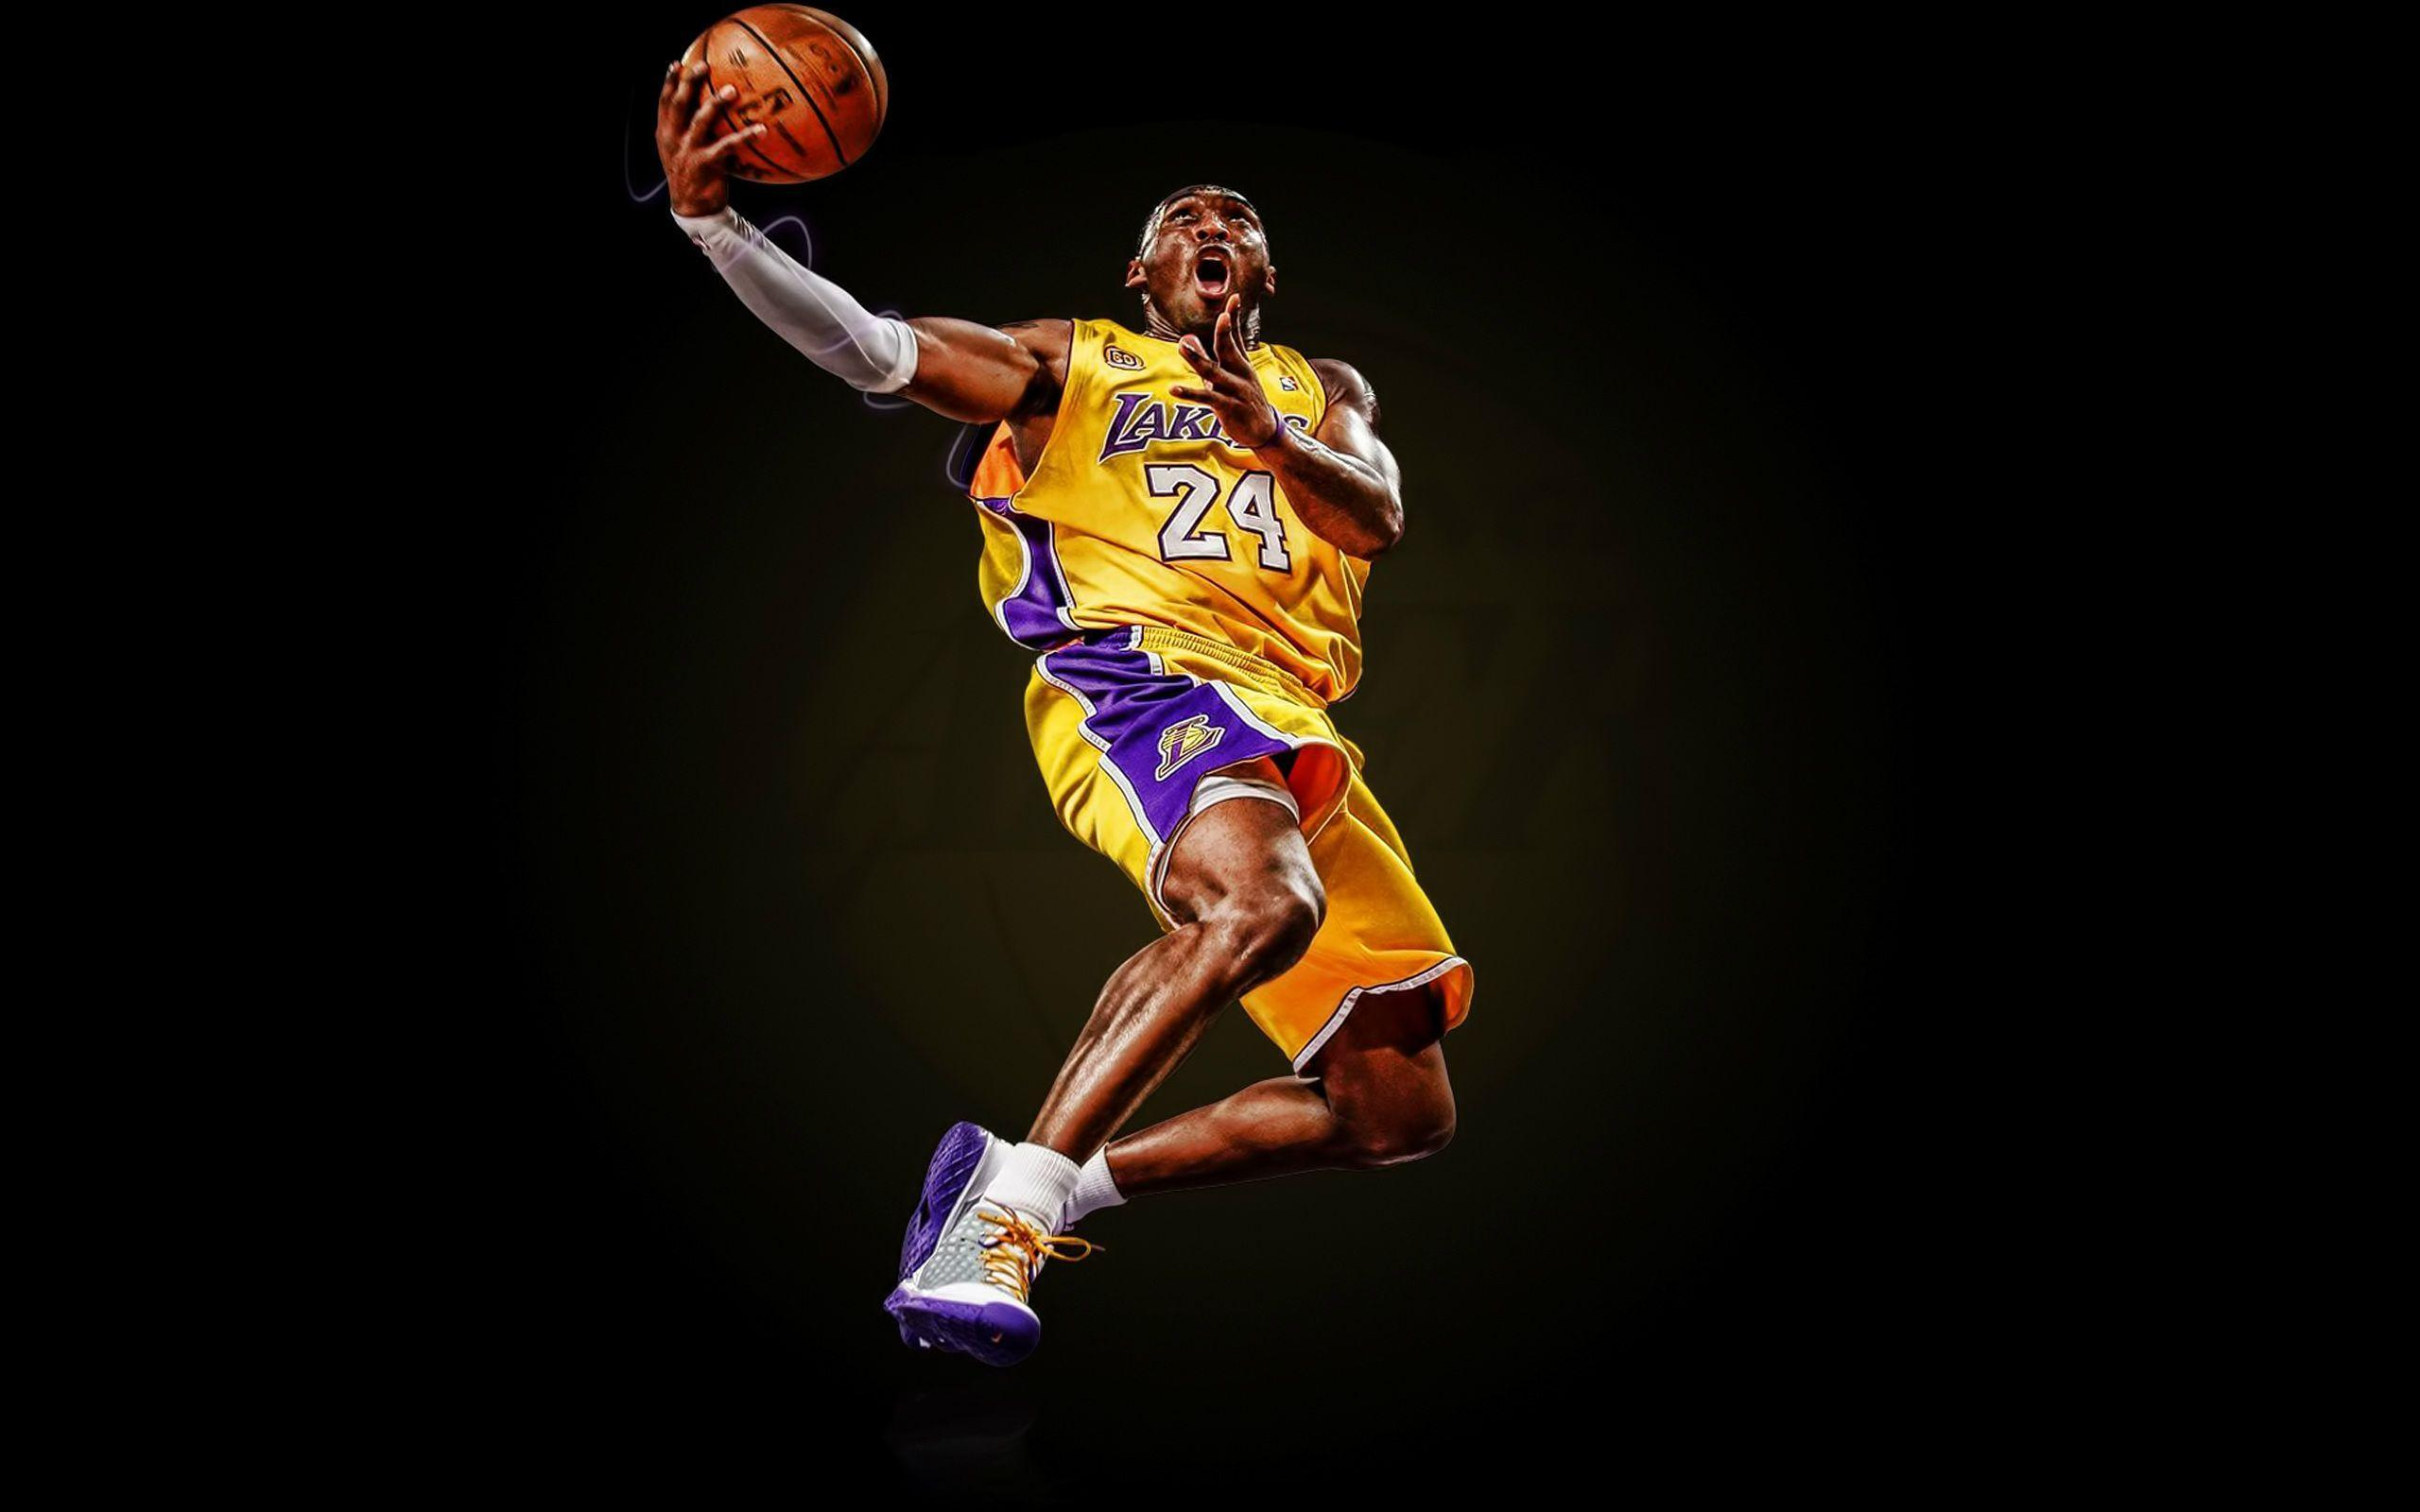 Lil Yachty Wallpaper Iphone Kobe Wallpapers 2016 Wallpaper Cave